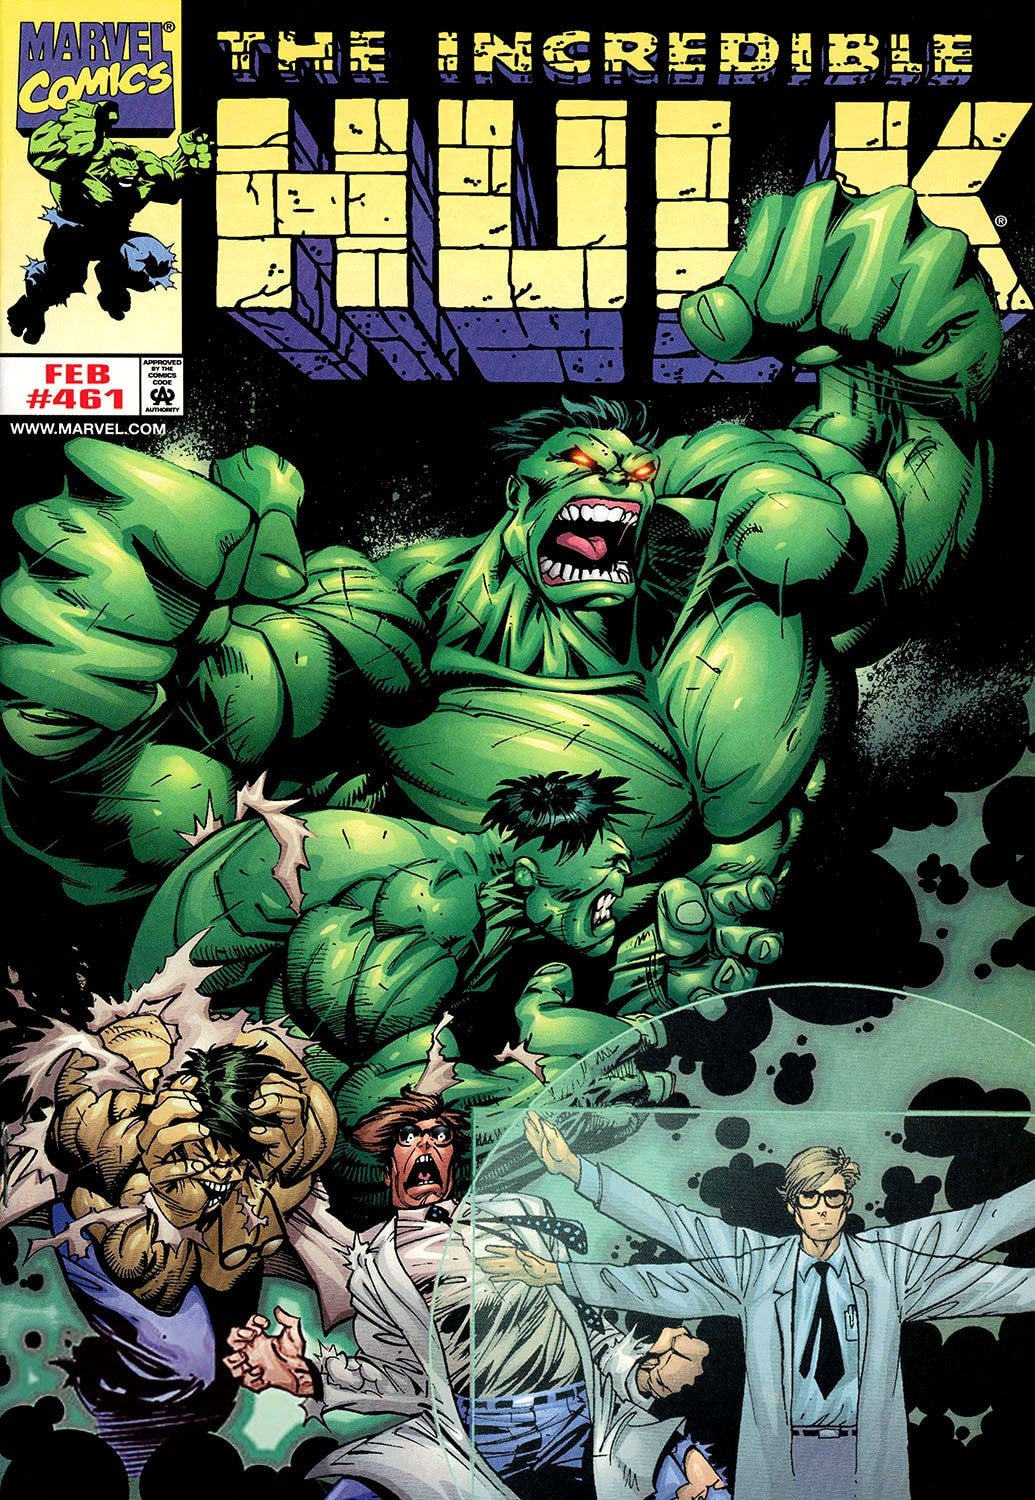 The Incredible Hulk #461 Stan Lee